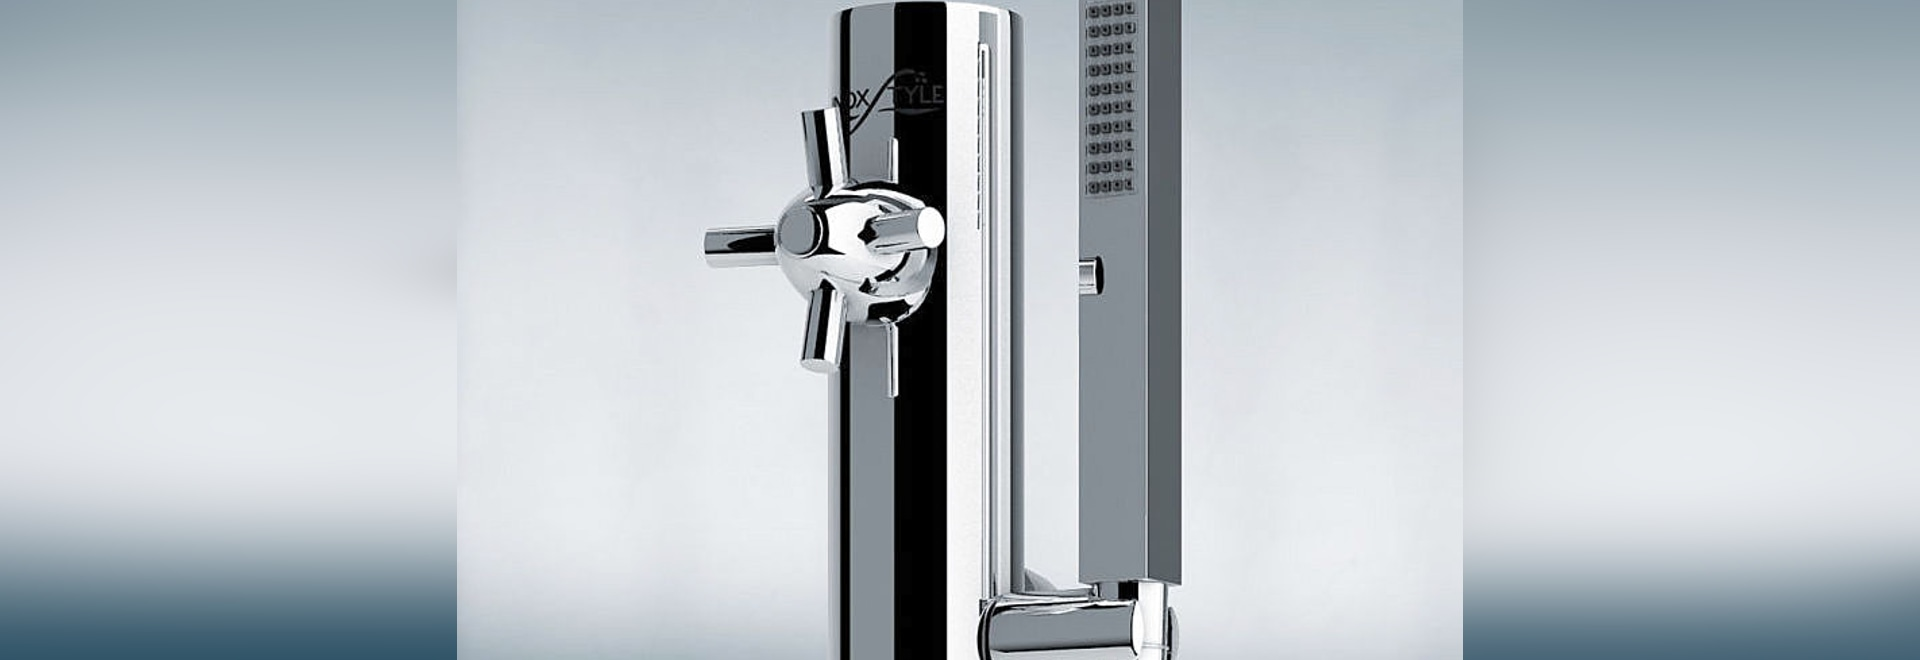 Telefono, the new outddoor shower column by Inoxstyle